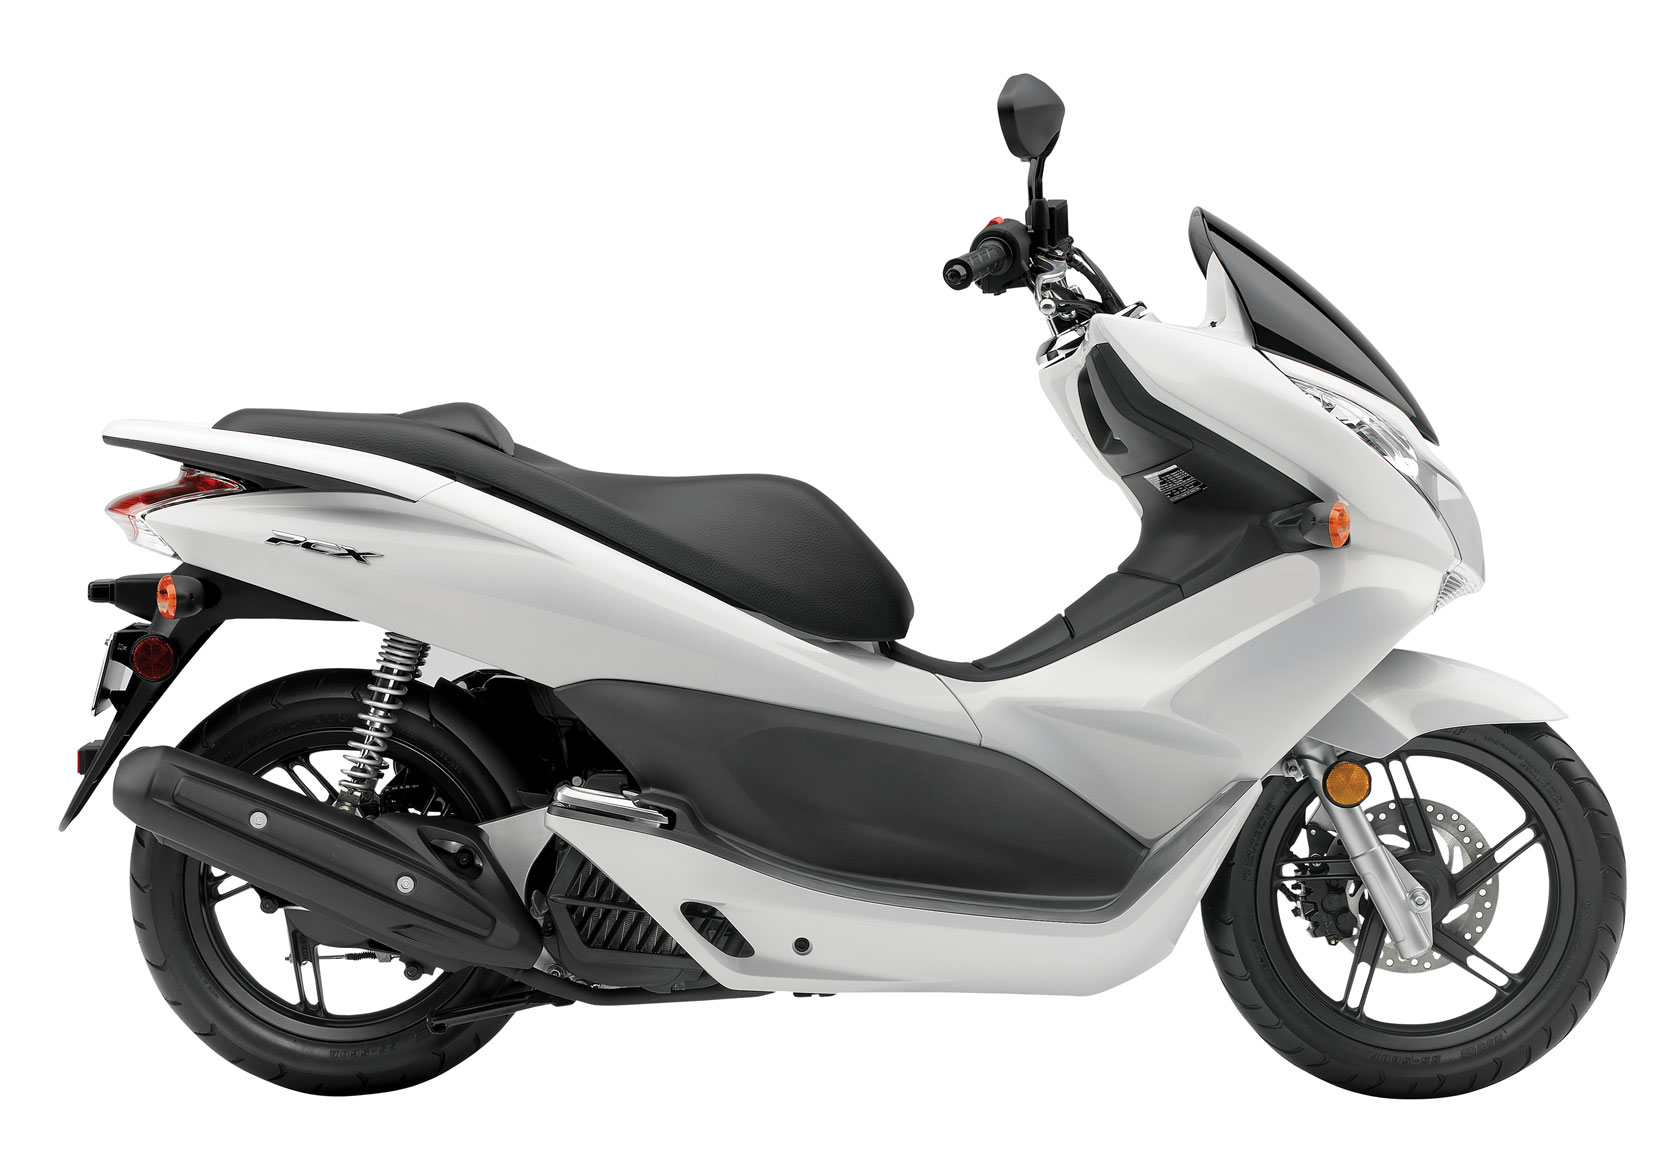 honda pcx 125 specs 2010 2011 autoevolution. Black Bedroom Furniture Sets. Home Design Ideas